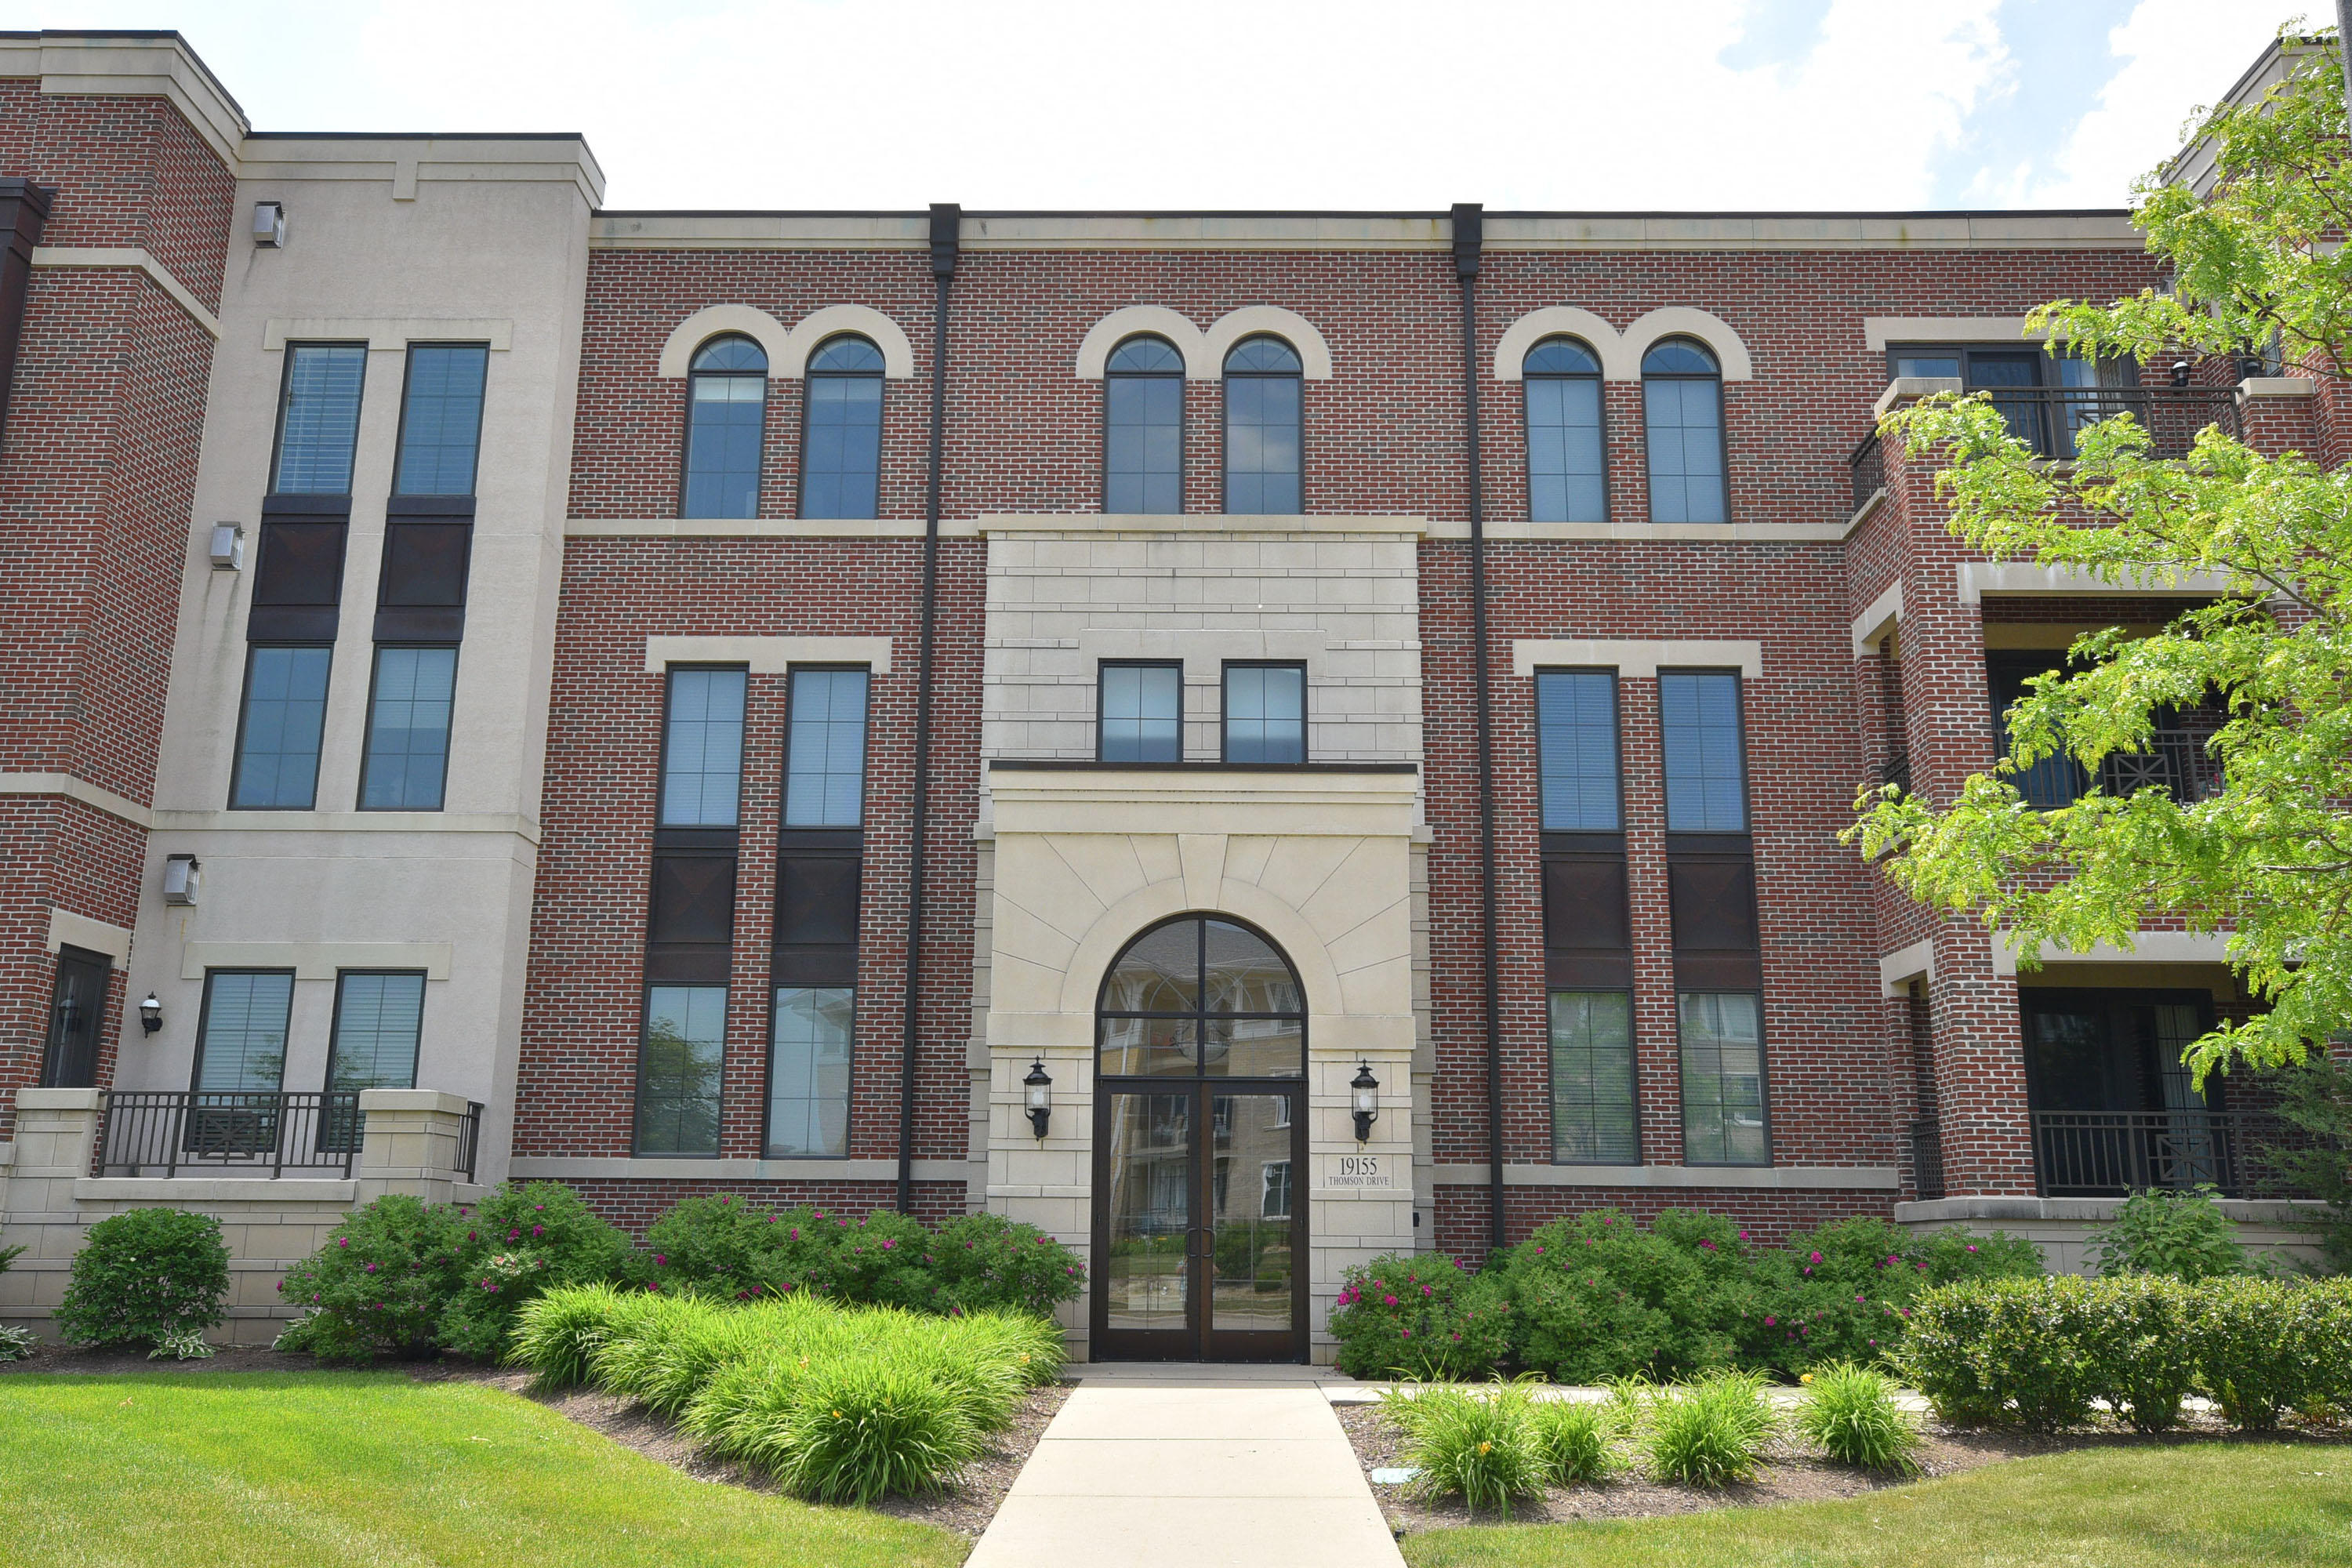 19155 Thomson Dr, Brookfield, Wisconsin 53045, 2 Bedrooms Bedrooms, 6 Rooms Rooms,2 BathroomsBathrooms,Condominiums,For Sale,Thomson Dr,3,1694415